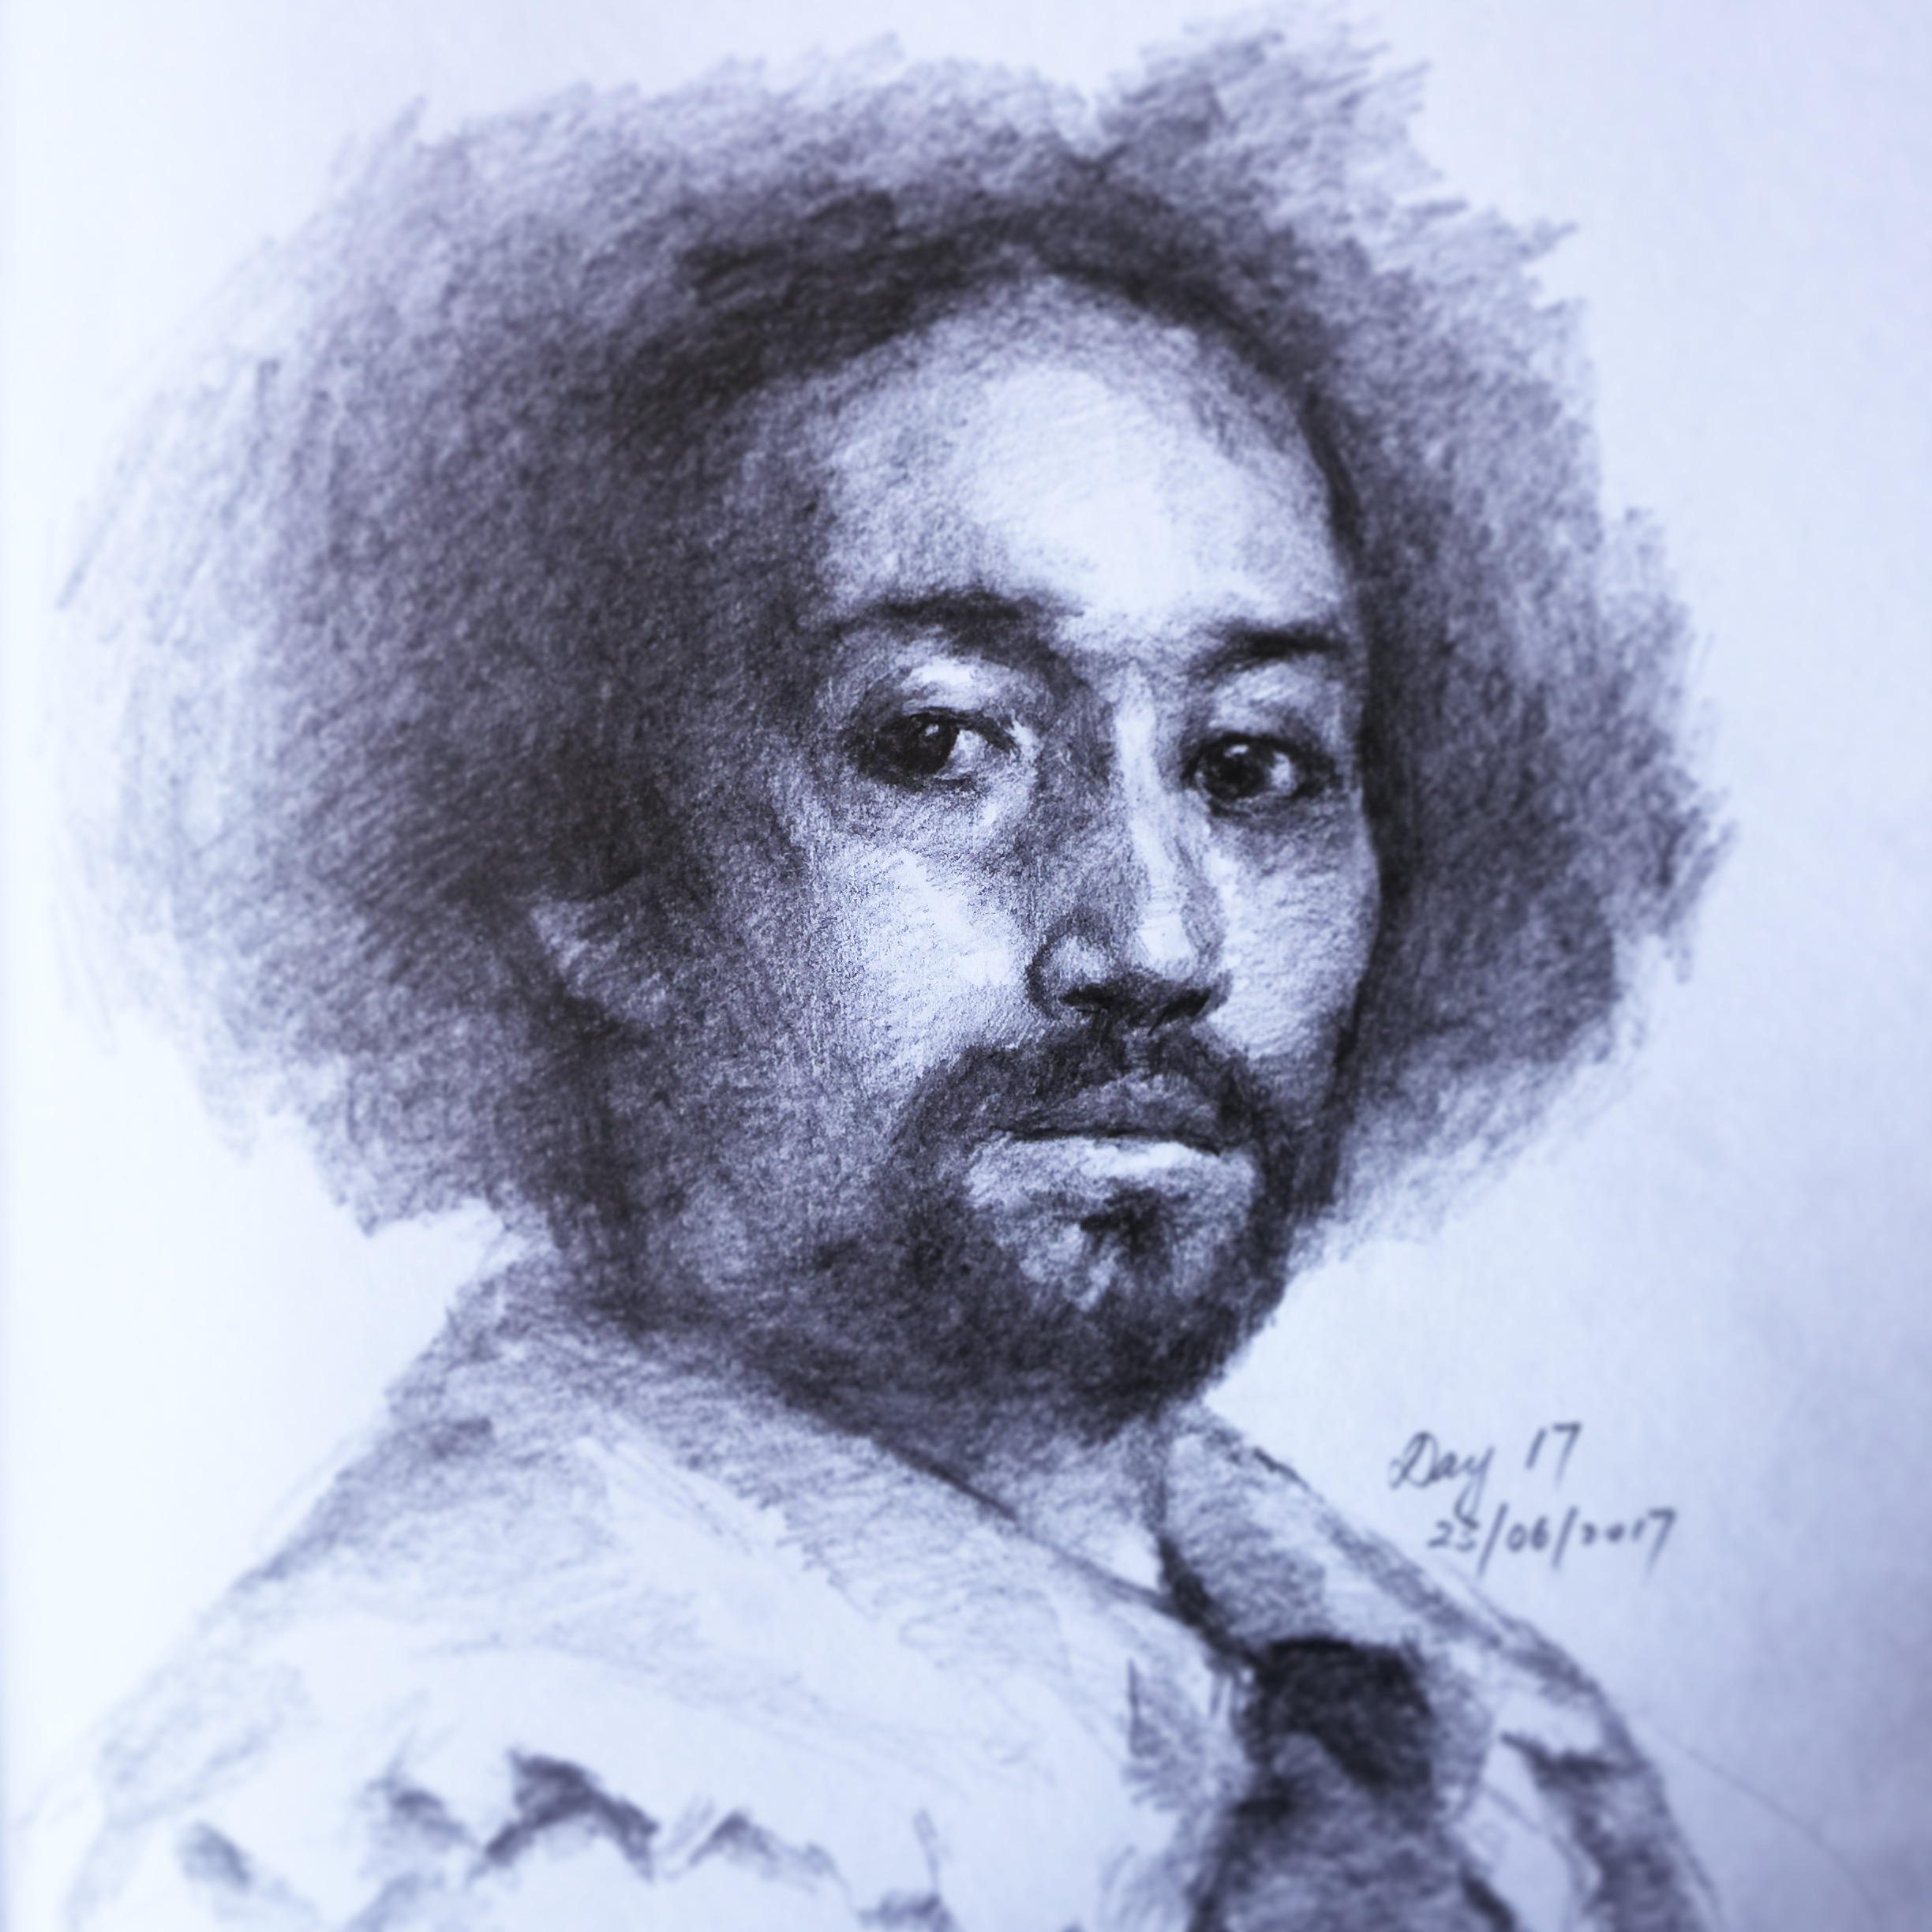 A sketch of Velázquez's  Juan de Pareja  part of my 100 Portraits series on my instagram. It's said that this was actually a practice painting of a slave he did before he did the commissioned portrait of the Pope, but what's fascinating about this portrait is how  n oble the subject looks. There is an internal  b earing about how the subject carries themselves that doesn't make him look like someone of lower social standing.